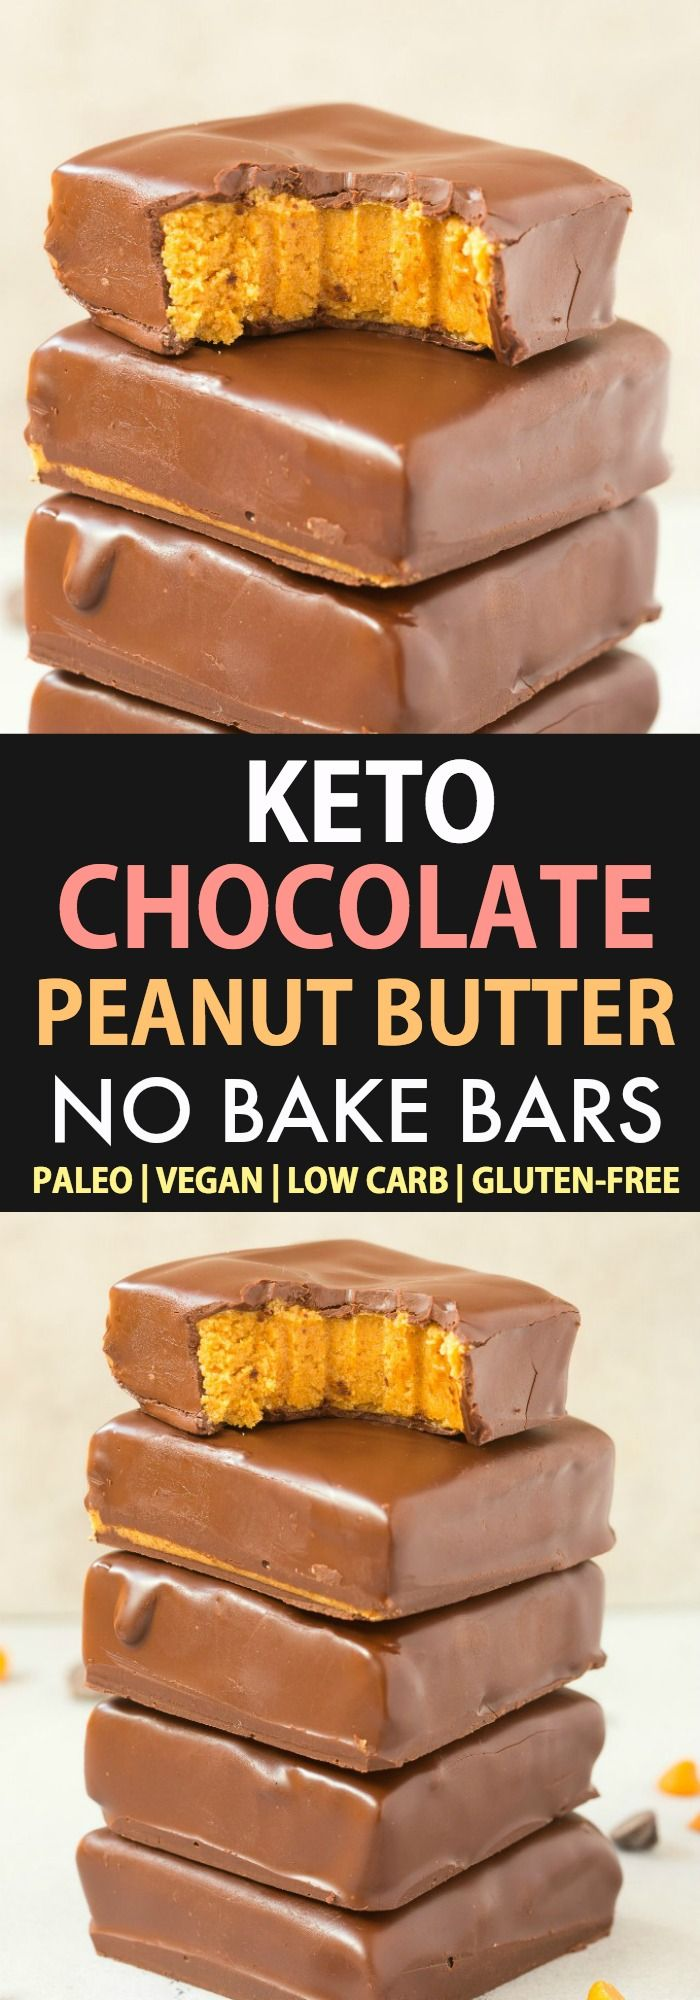 4-Ingredient No Bake Keto Chocolate Peanut Butter …